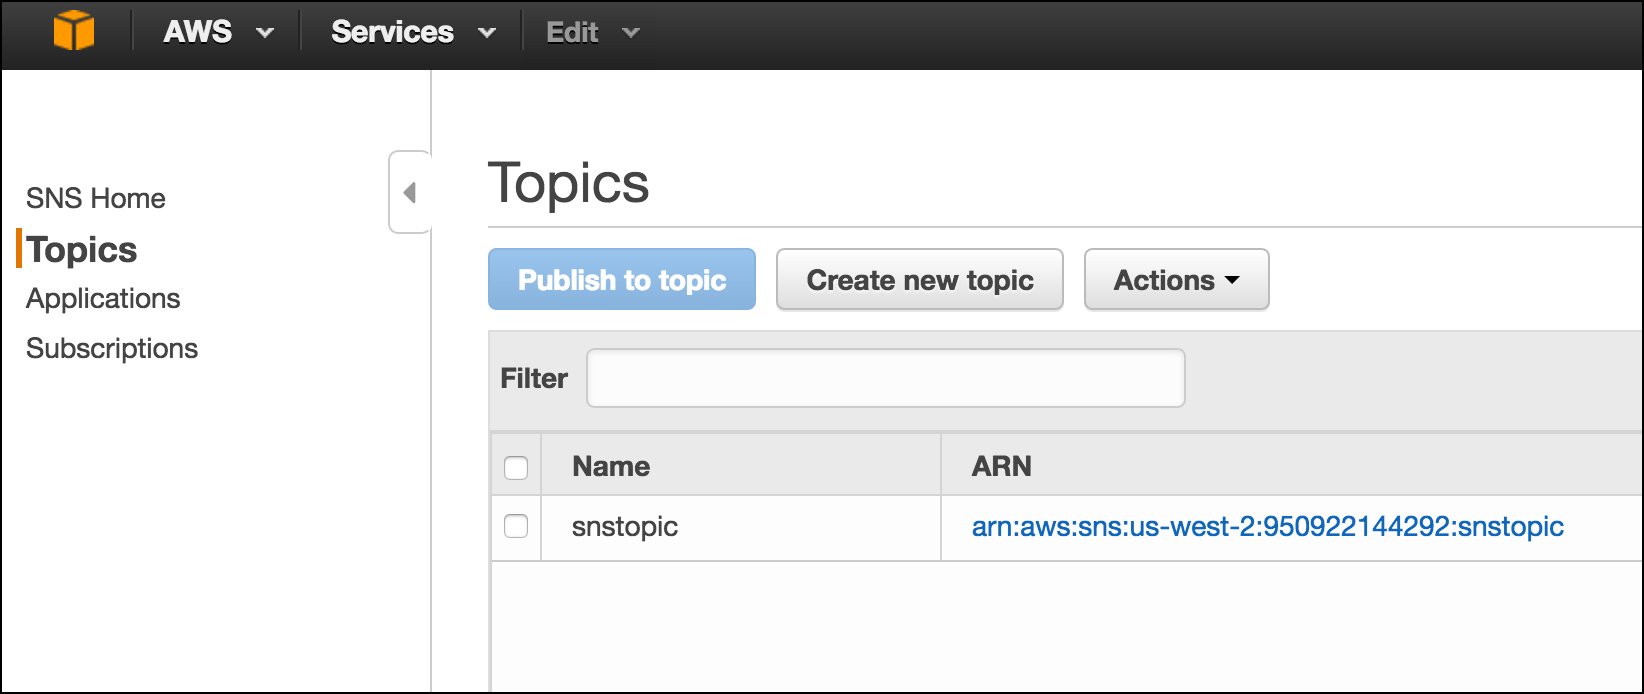 Figure 10: Once you create a Topic, it will be listed on the Topics page in SNS